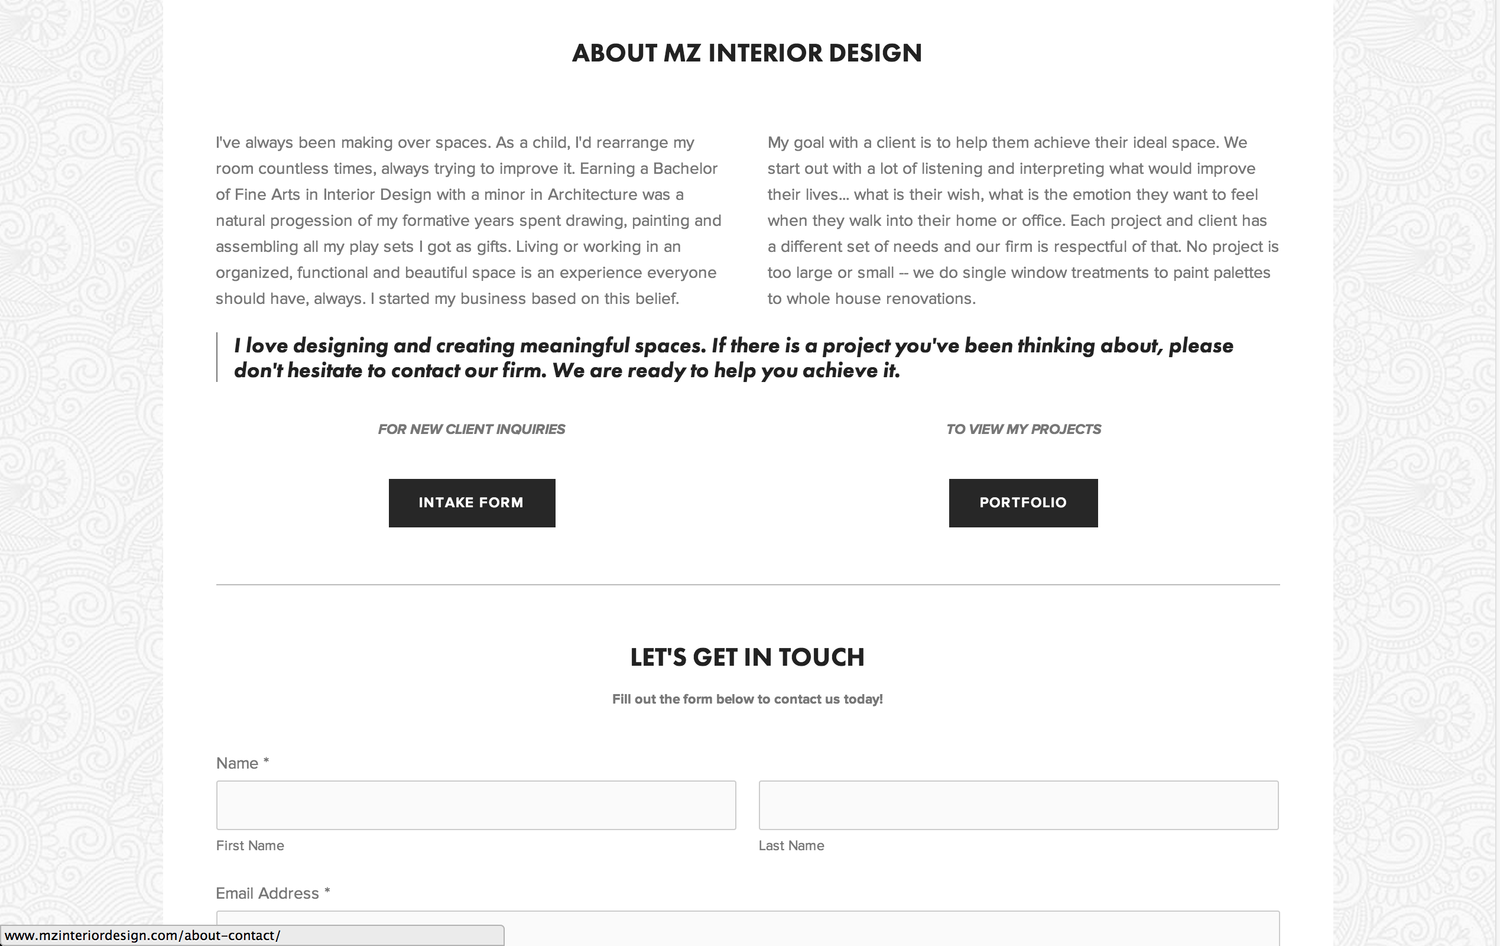 MZ Interior Design Website Design Stephanie Cafasso Design